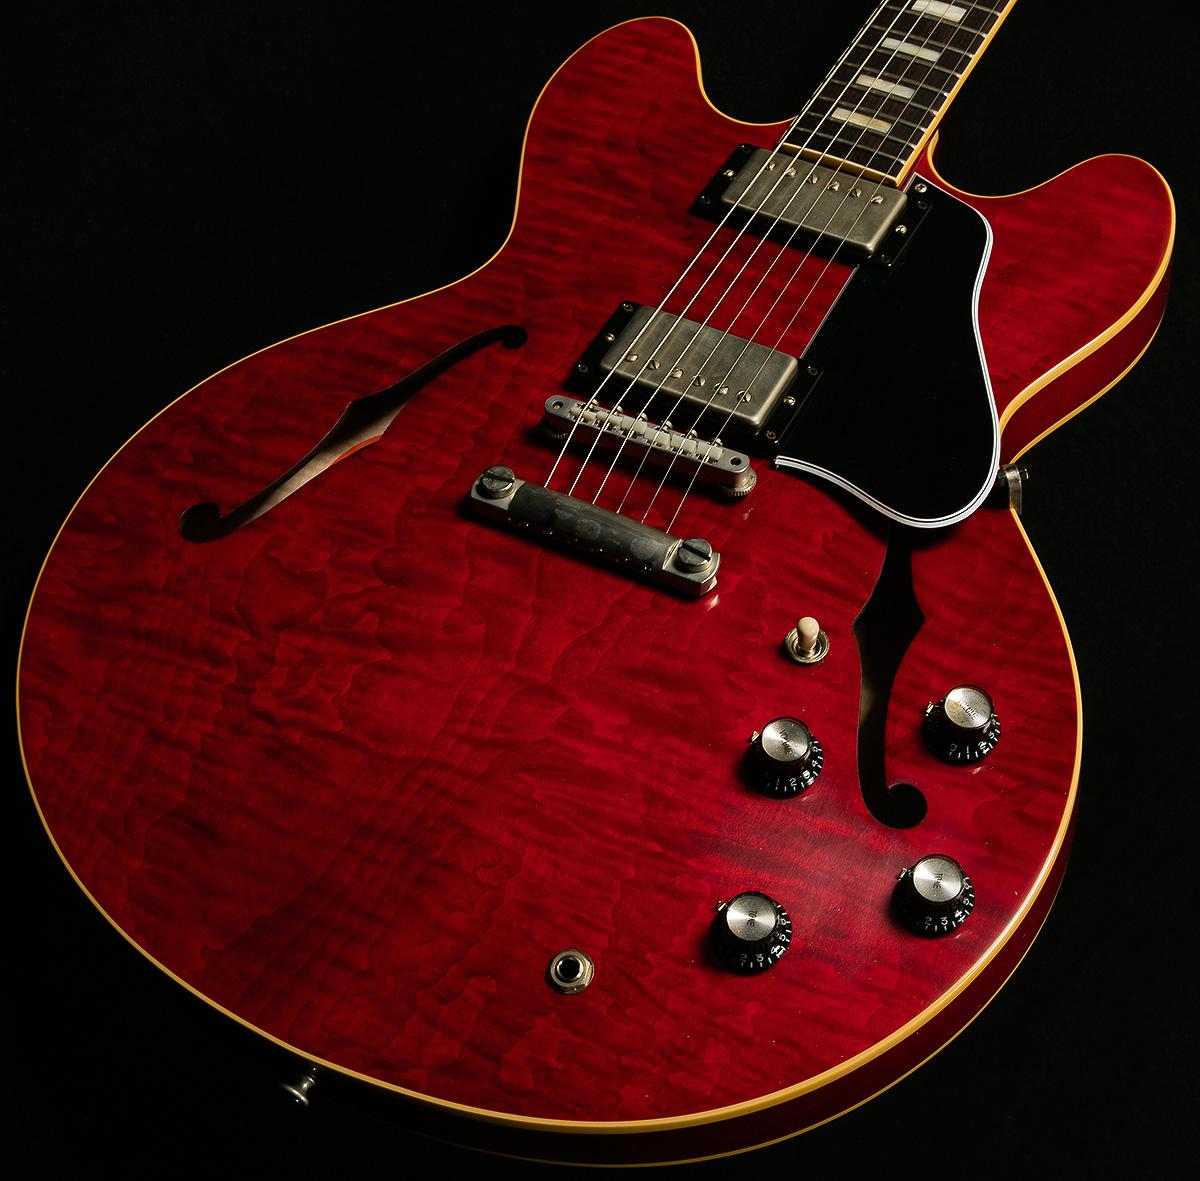 Latest addition to our Exclusive Run with @gibsonguitar Memphis. '63 ES-335 w/ wildwood spec pickups in 60's Cherry! http://t.co/G87gCXETRK